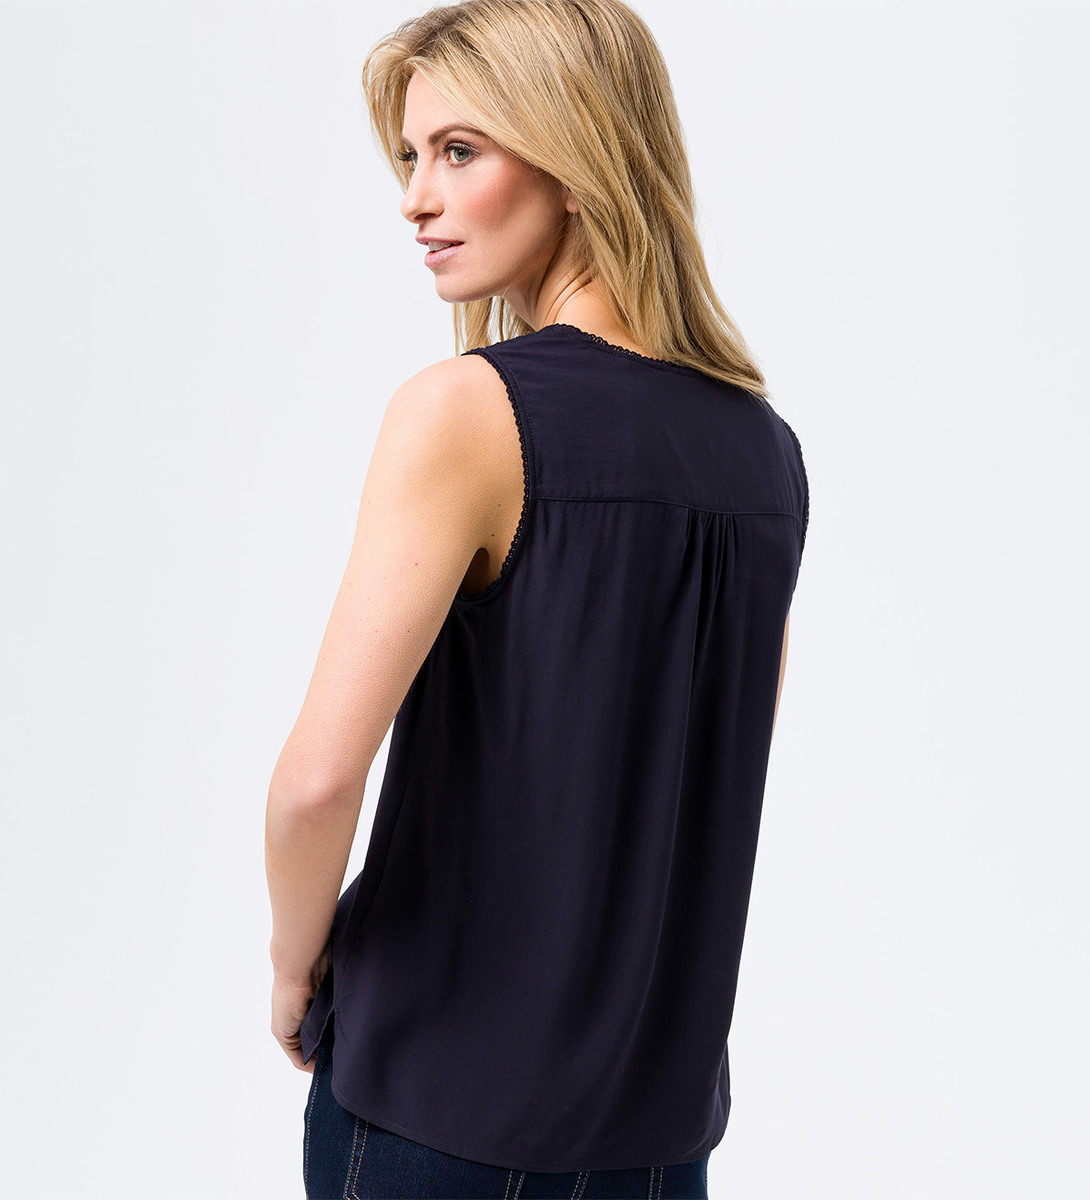 Bluse mit Spitzendesign in dark blue